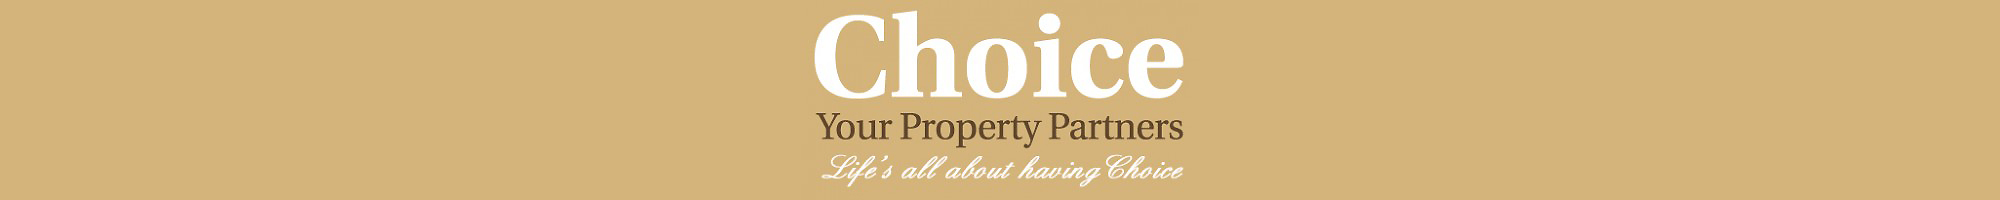 Choice Your Property Partners Banner